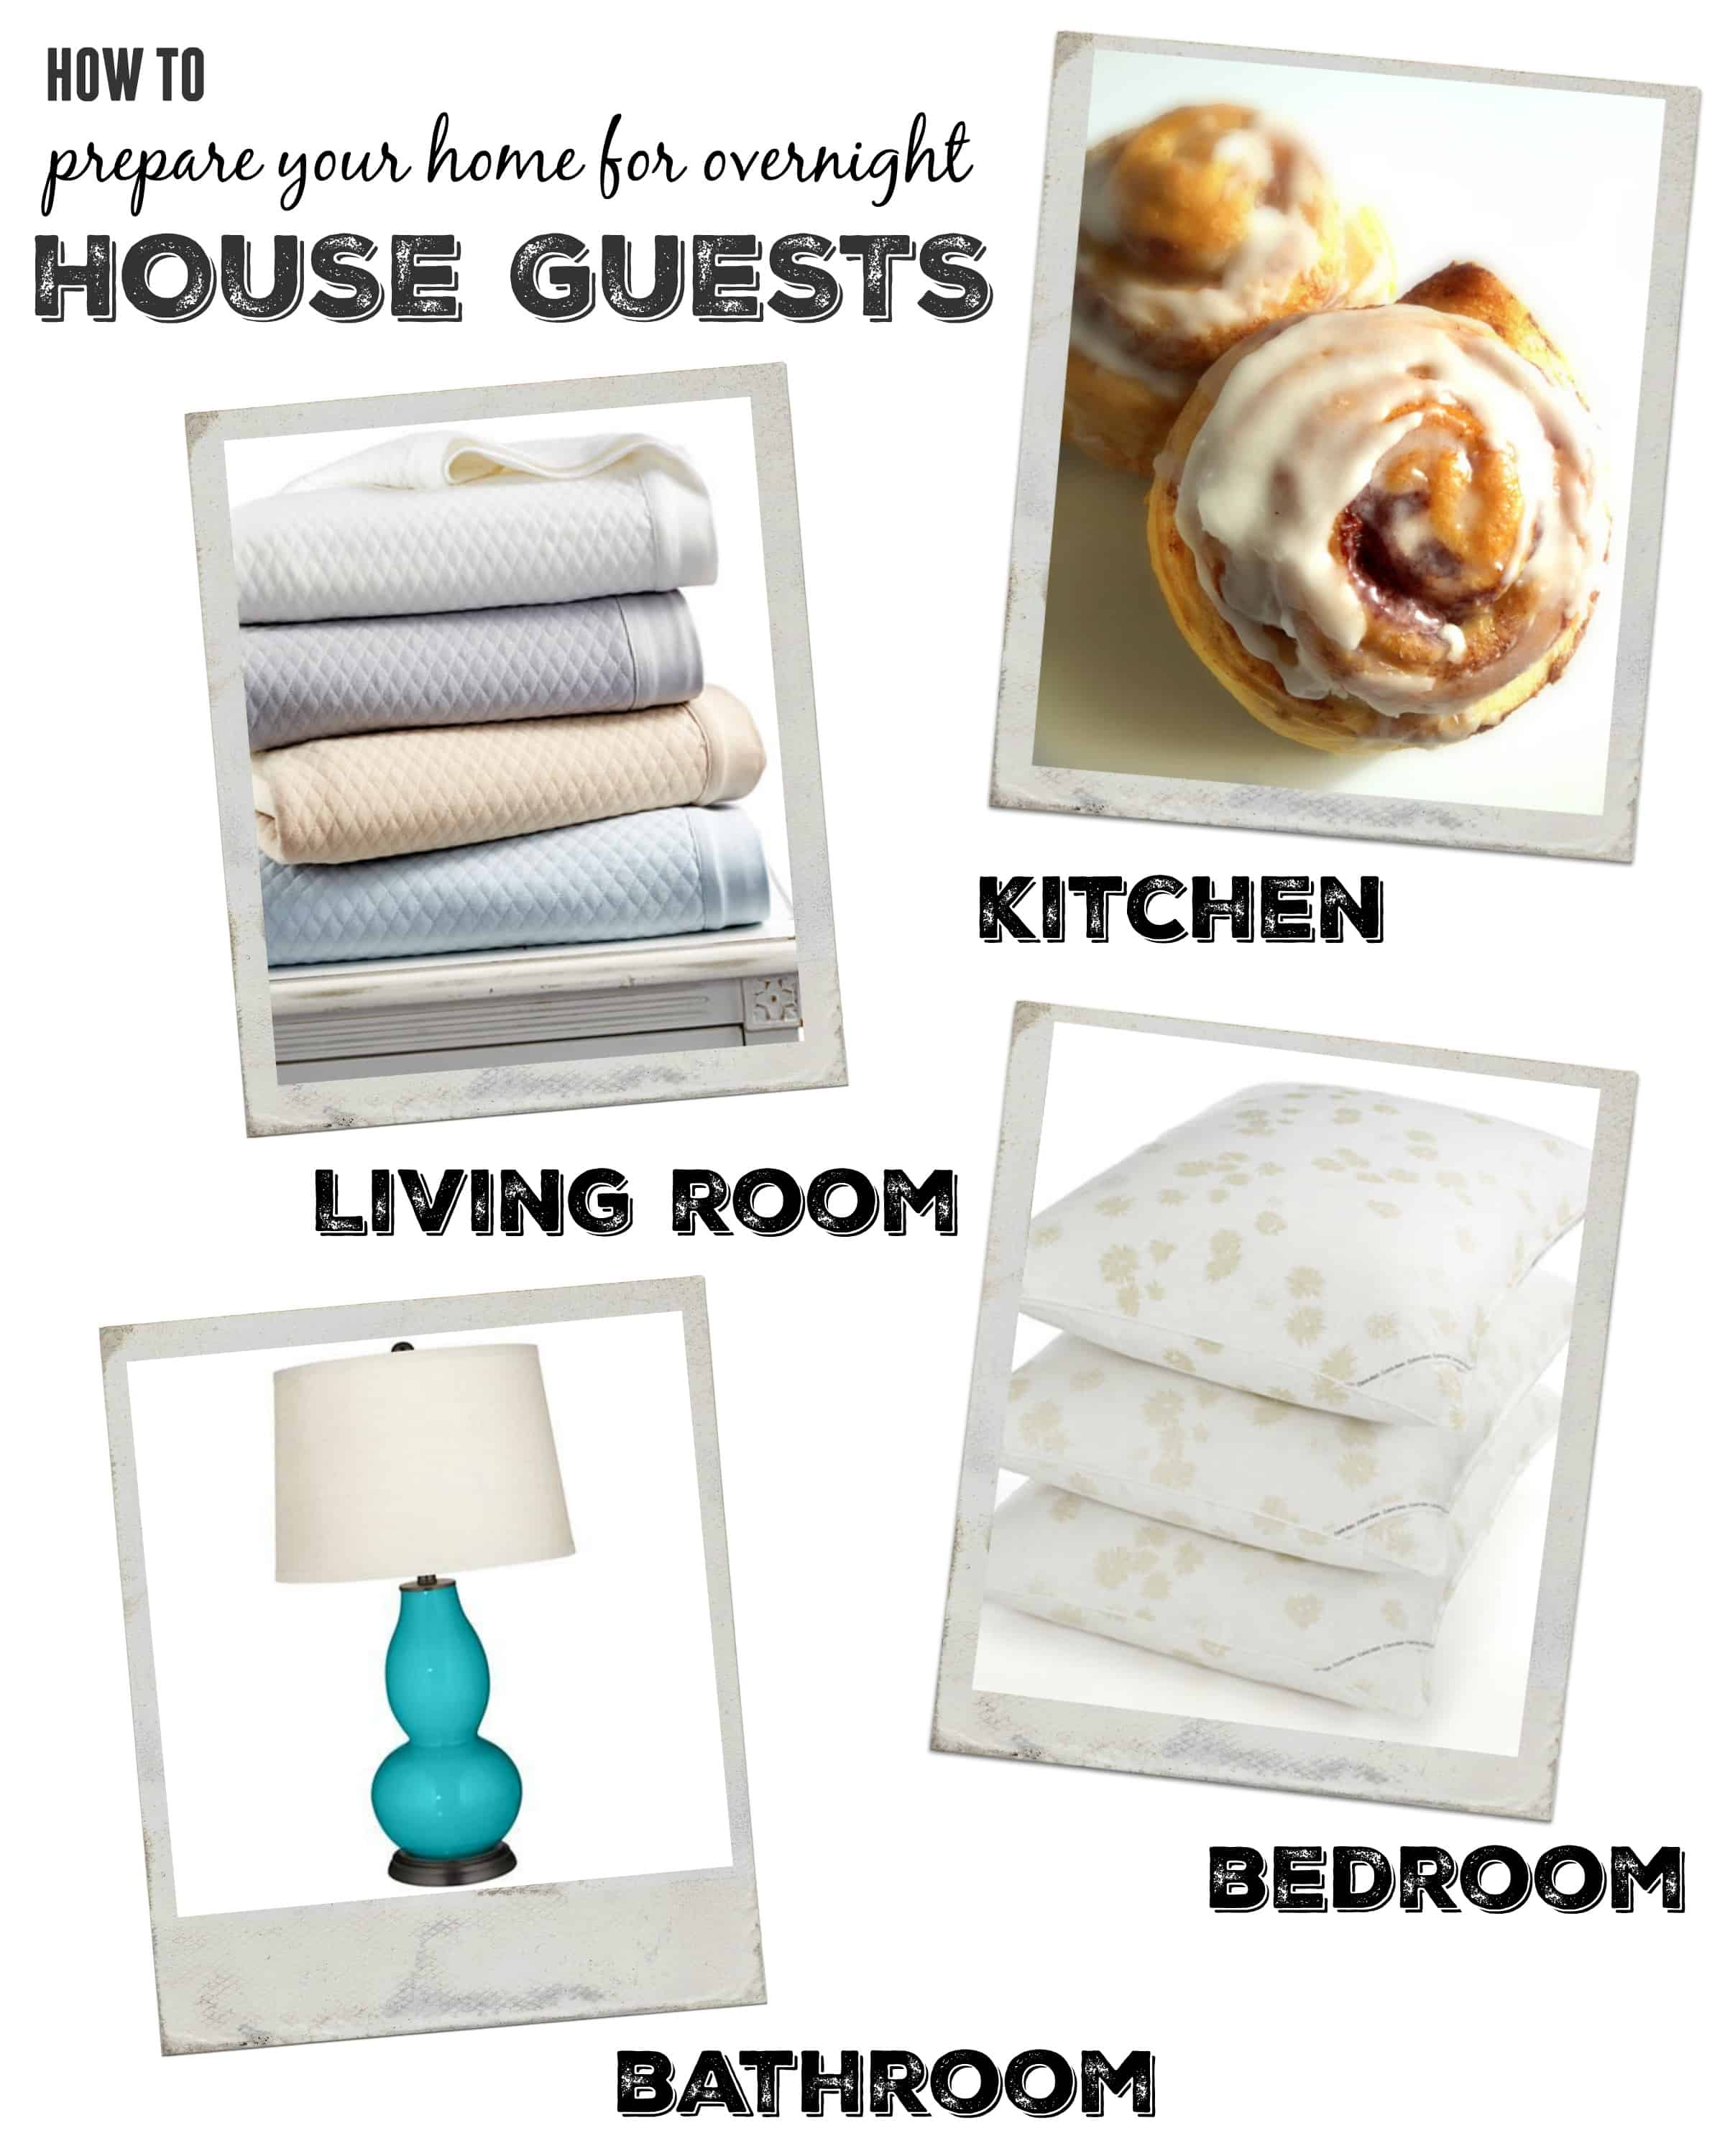 How to prepare your home for overnight house guests